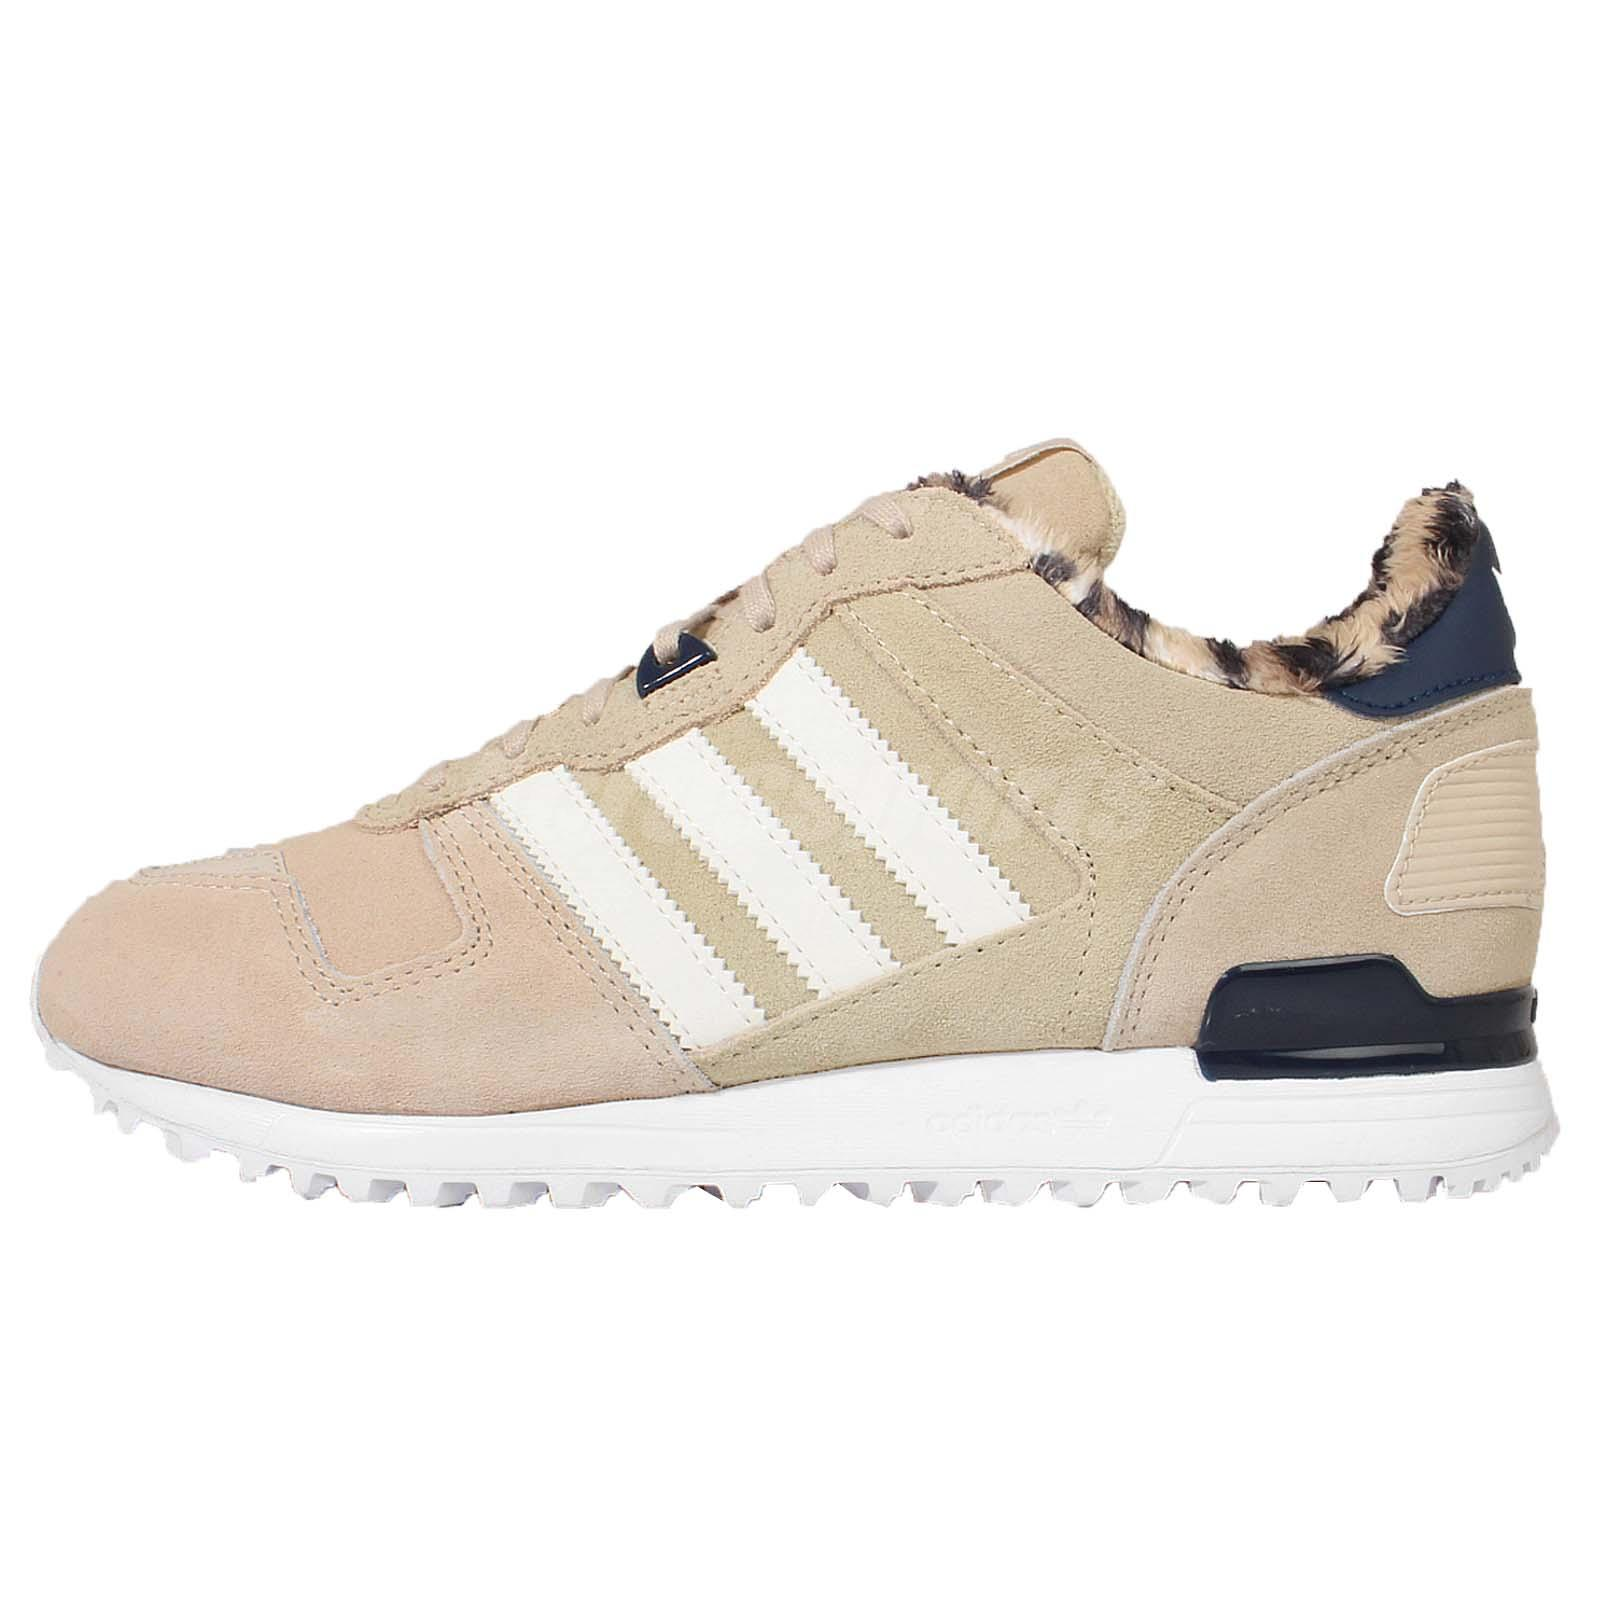 new concept d6214 4fdca coupon code adidas zx 700 price philippines 3be23 2a956